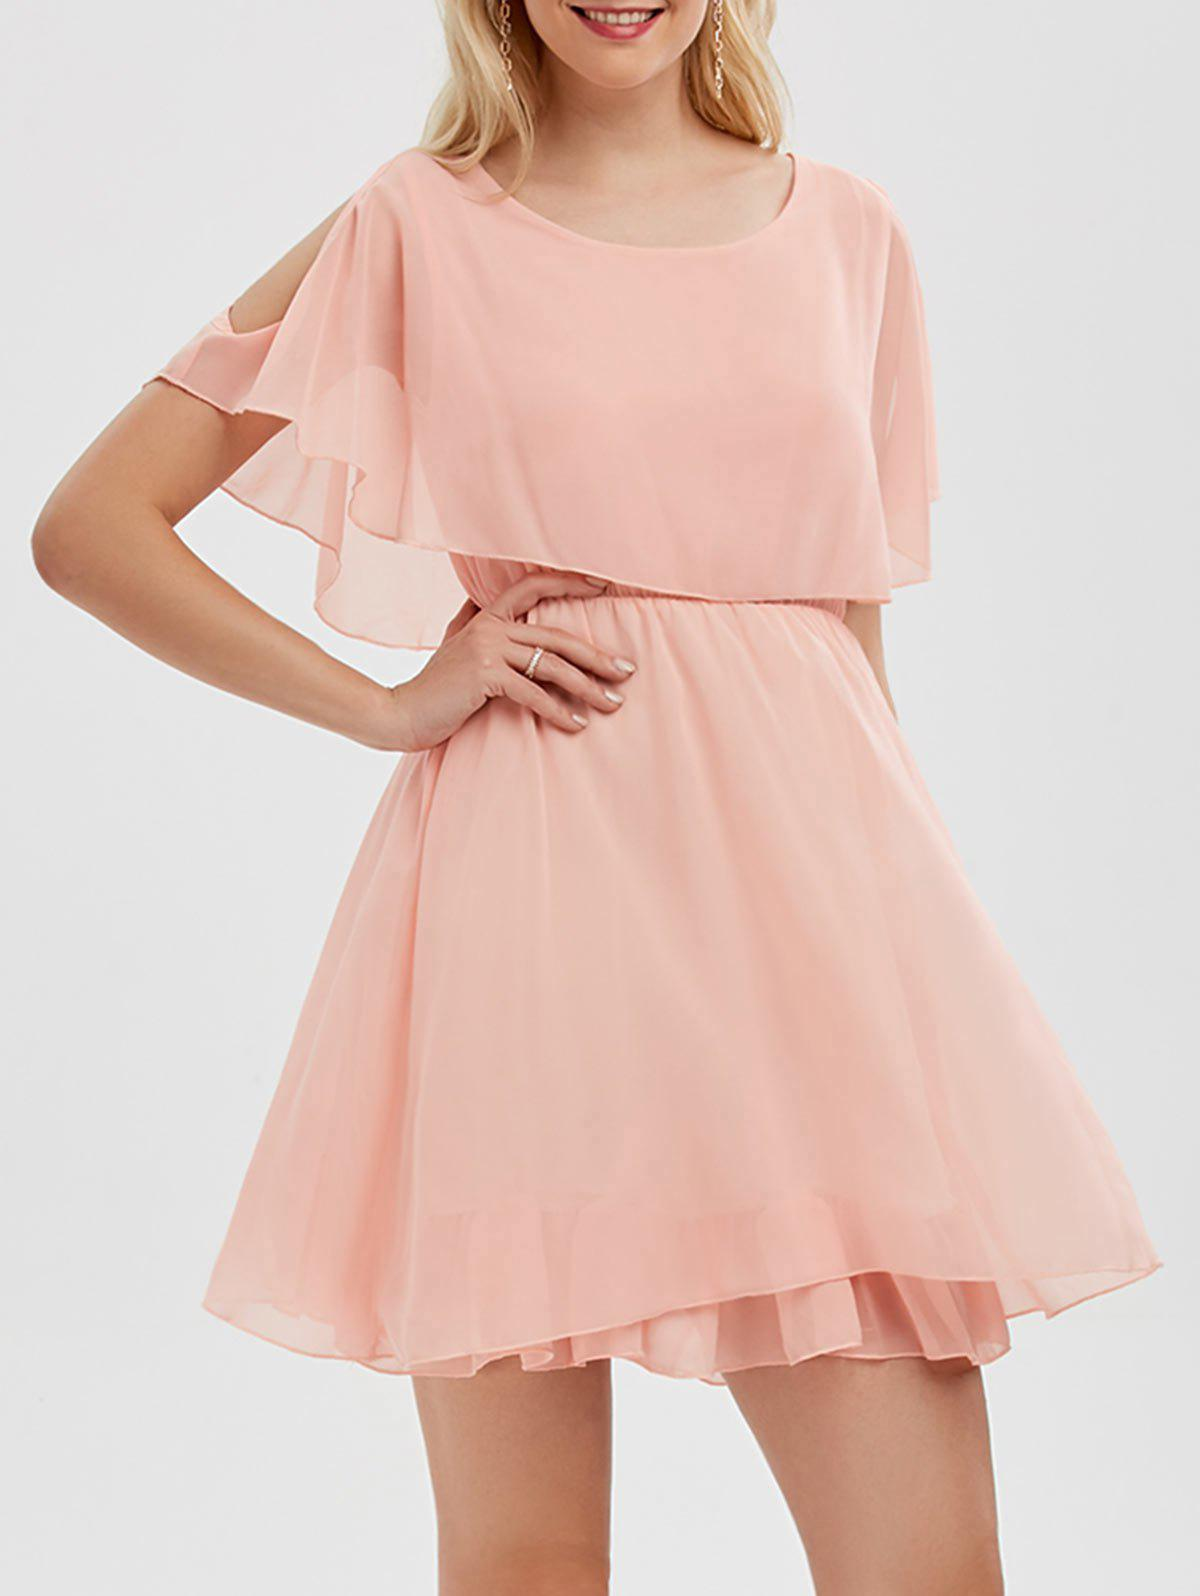 Ruffle Chiffon Cold Shoulder Mini Dress - ROSE PÂLE M